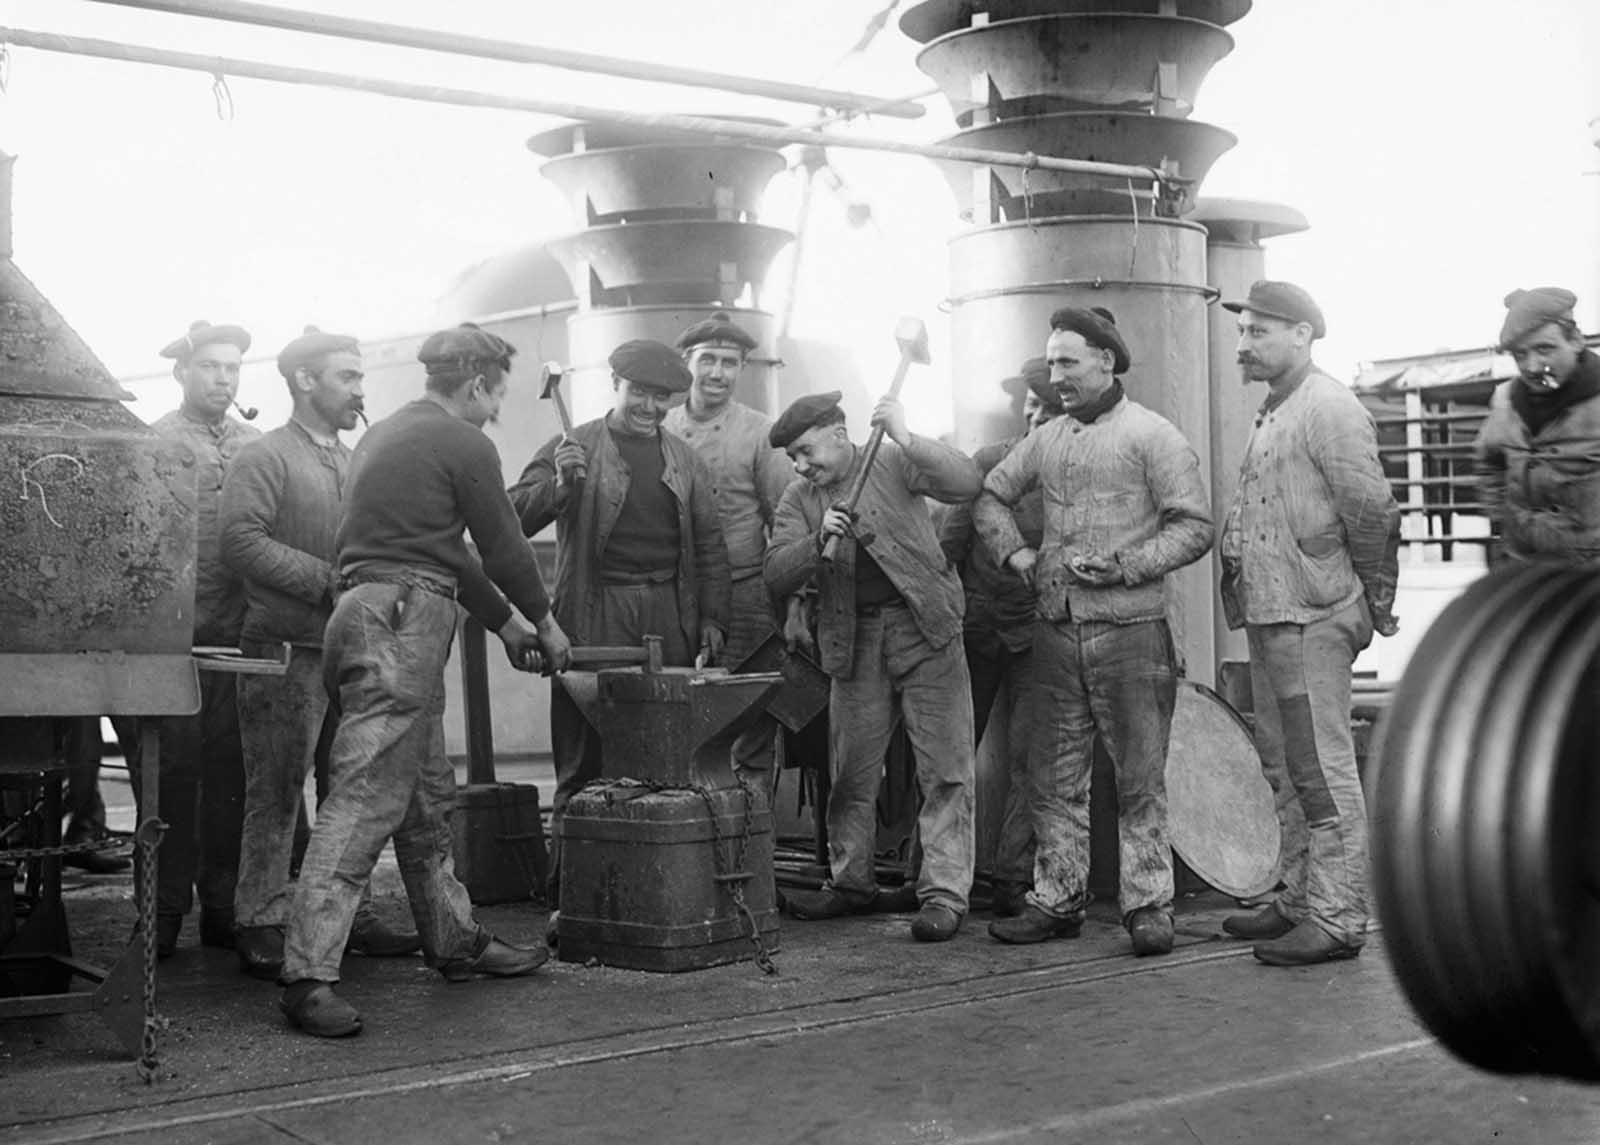 Sailors aboard the French cruiser Amiral Aube pose for a photograph at an anvil attached to the deck.